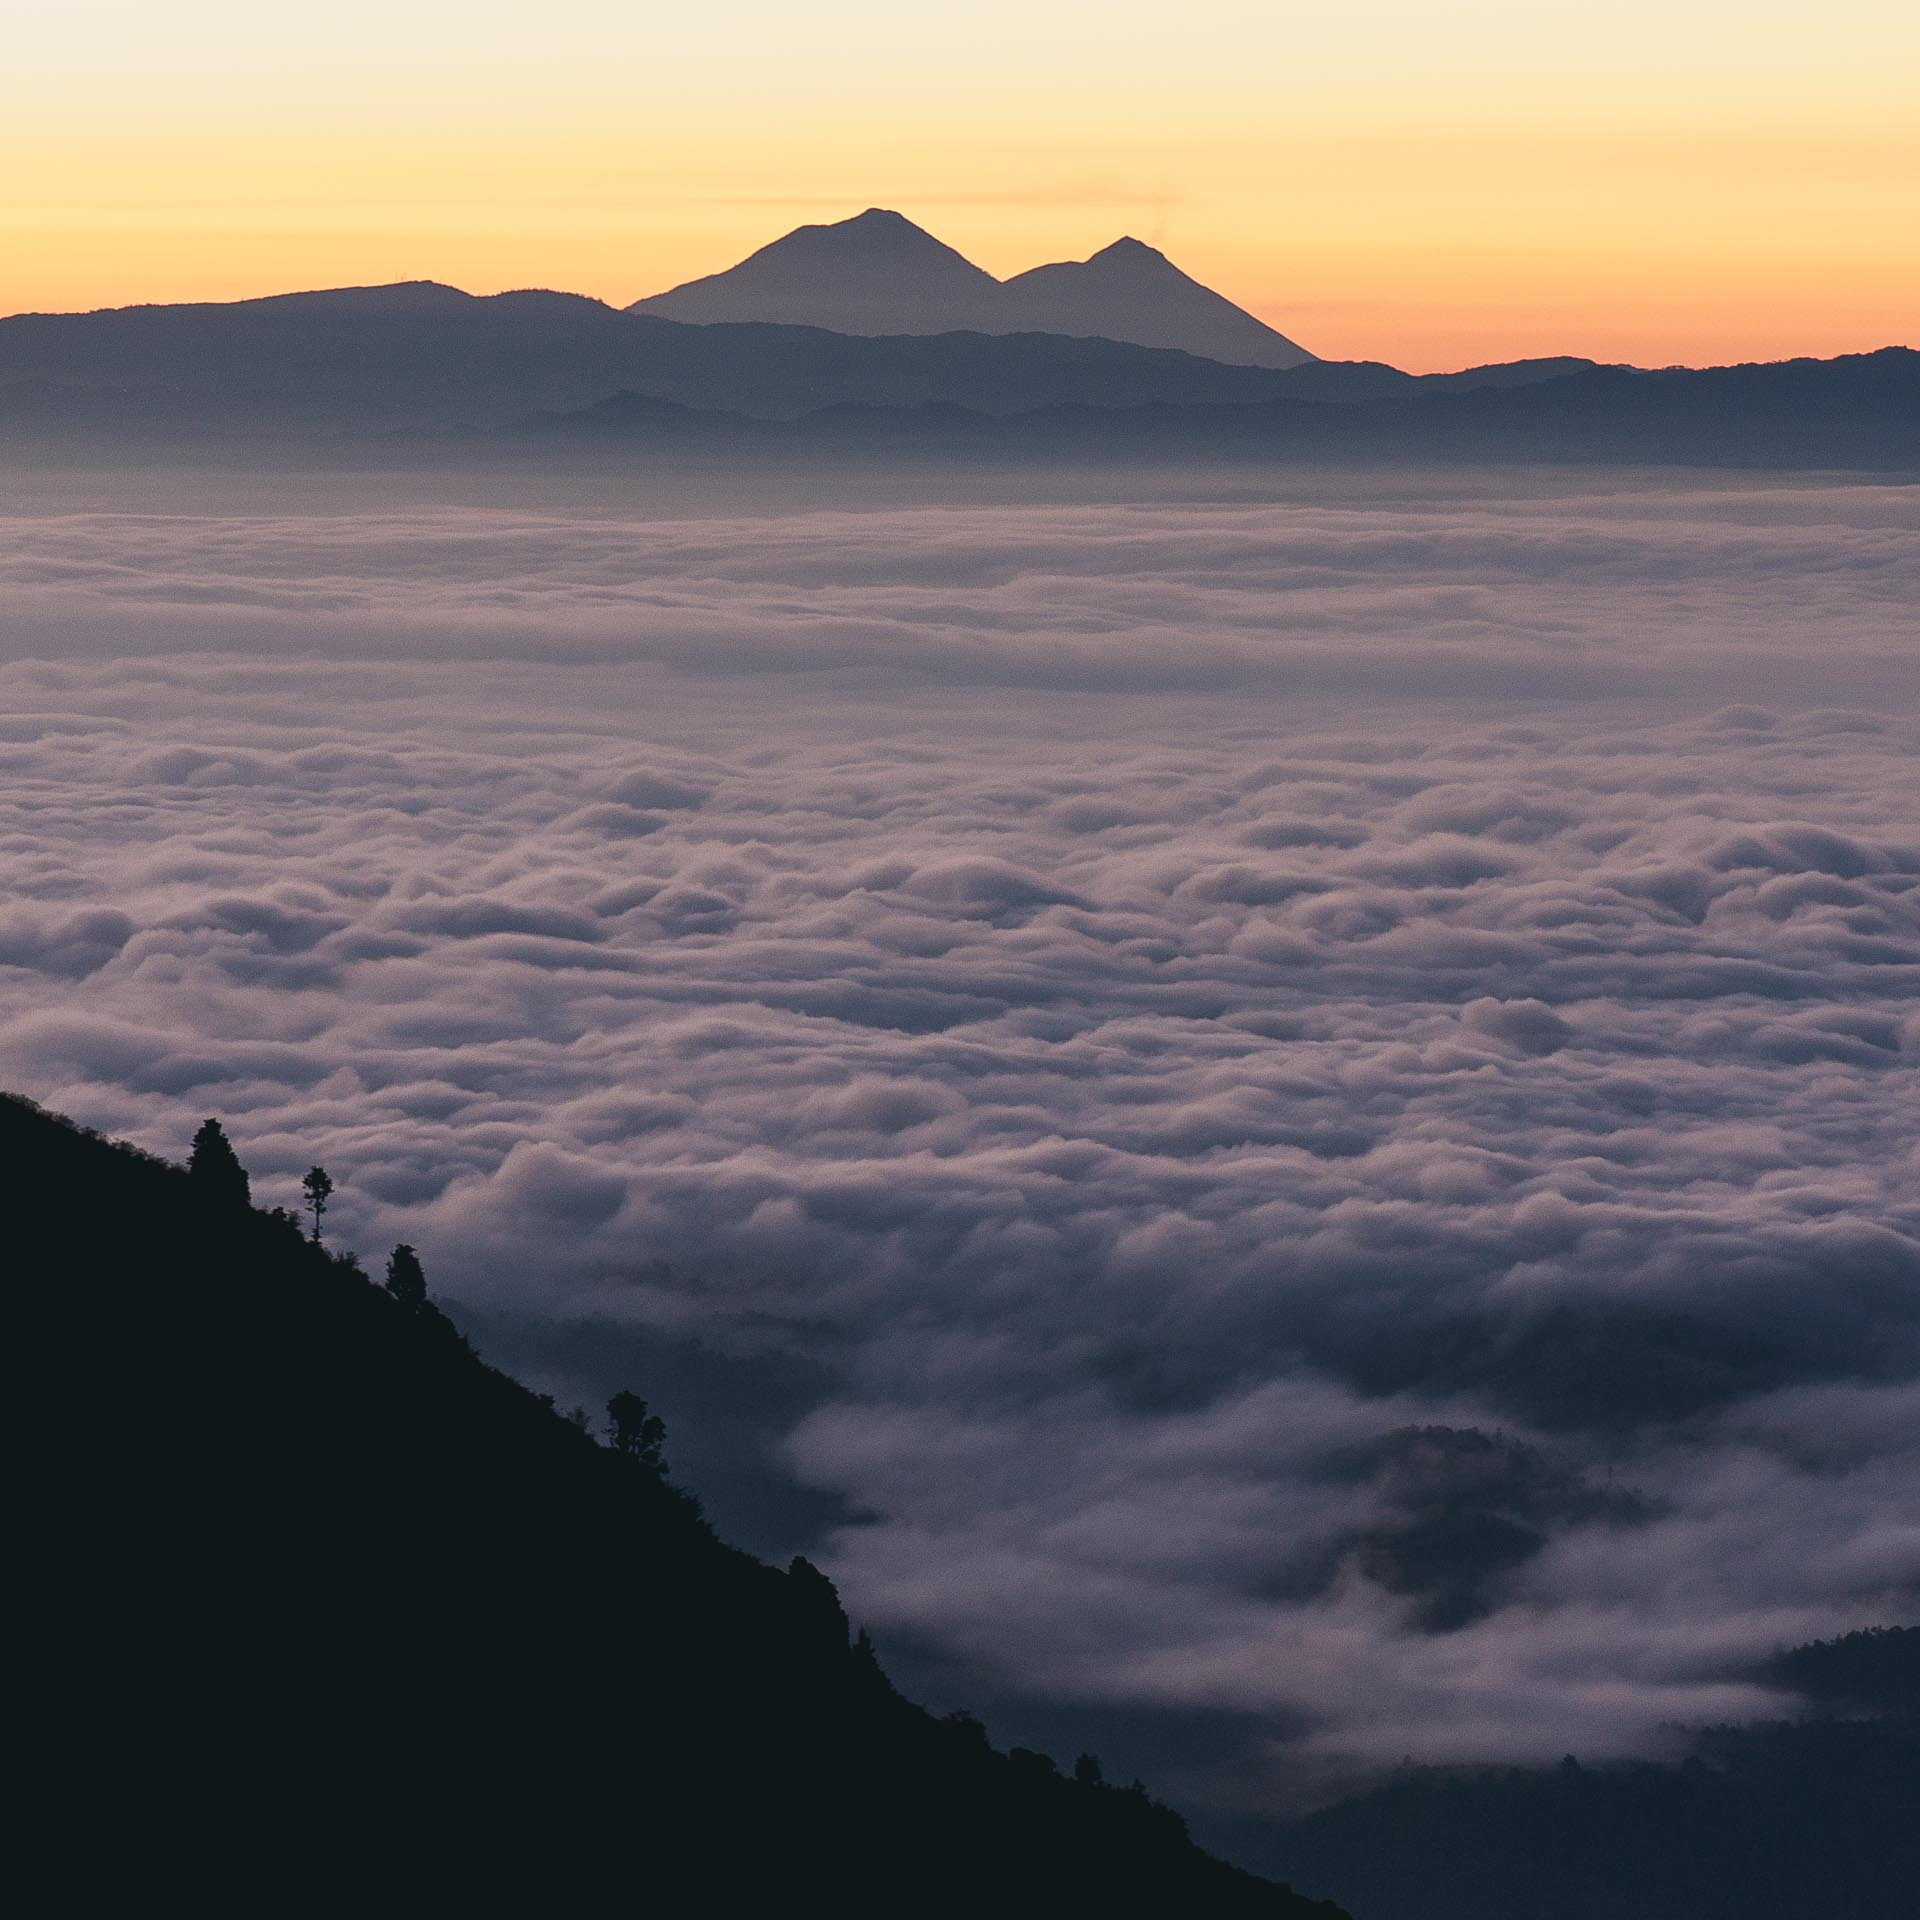 Sunrise overlooking volcanoes from the Cuchumatanes mountain range. Guatemala